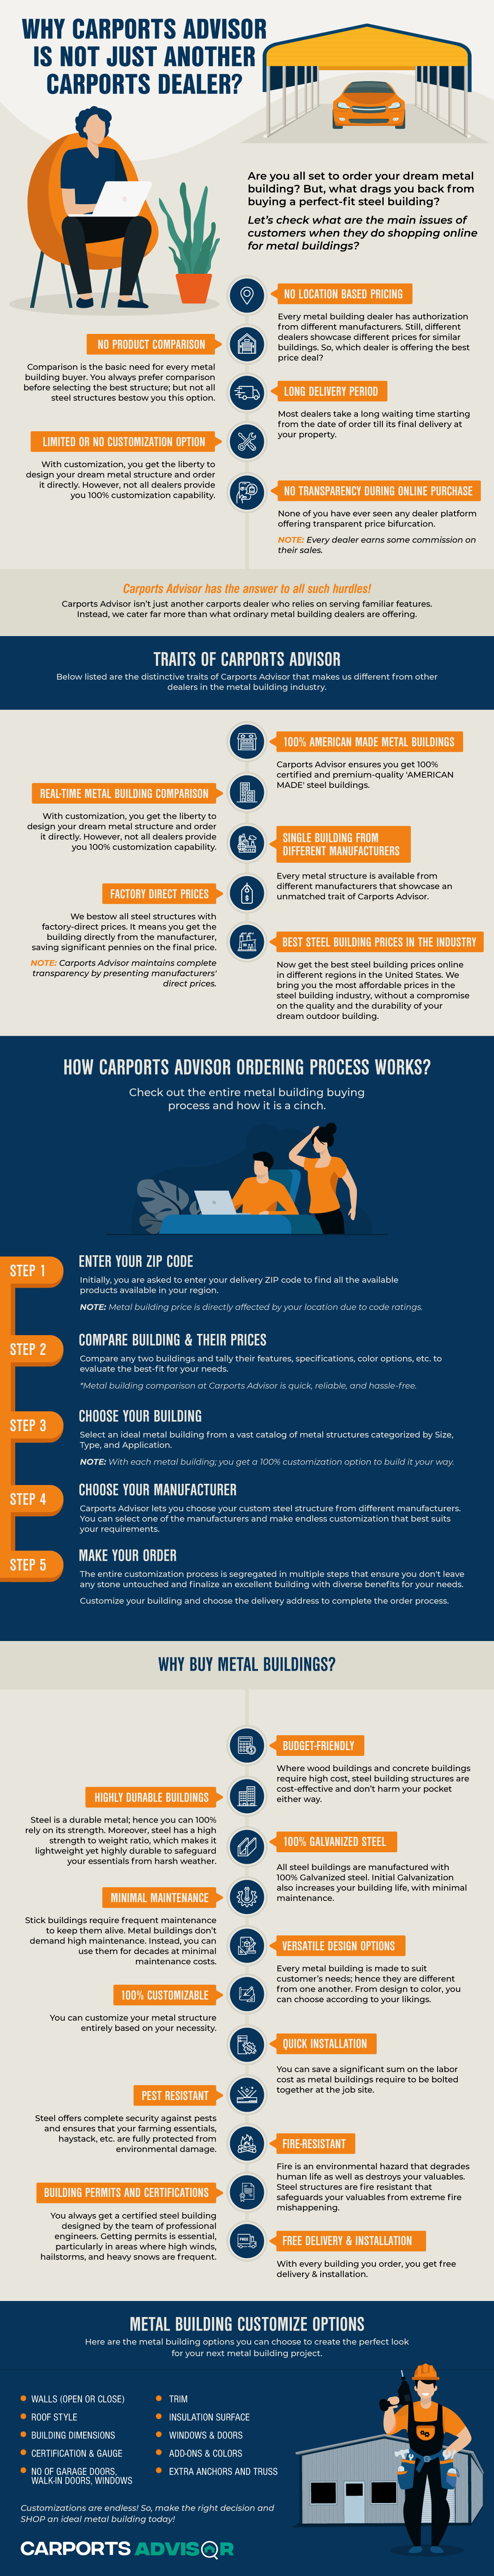 Why Carports Advisor is Not Just Another Carports Dealer?